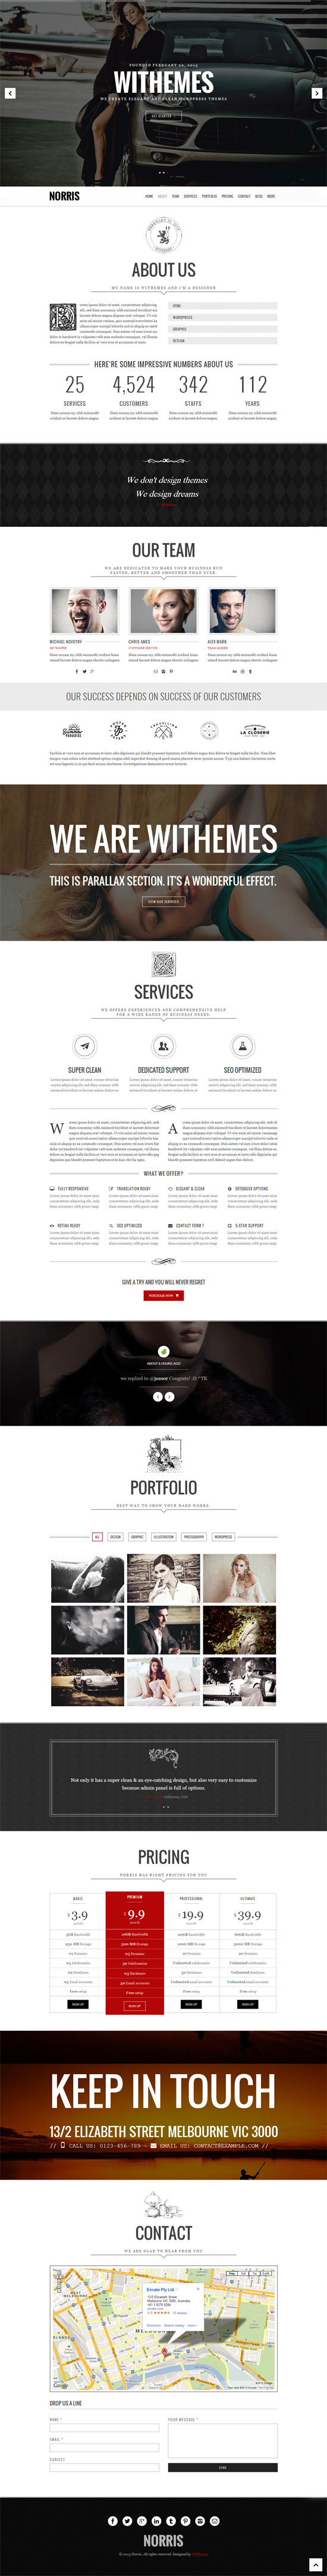 Norris - Elegant Onepage WordPress Theme